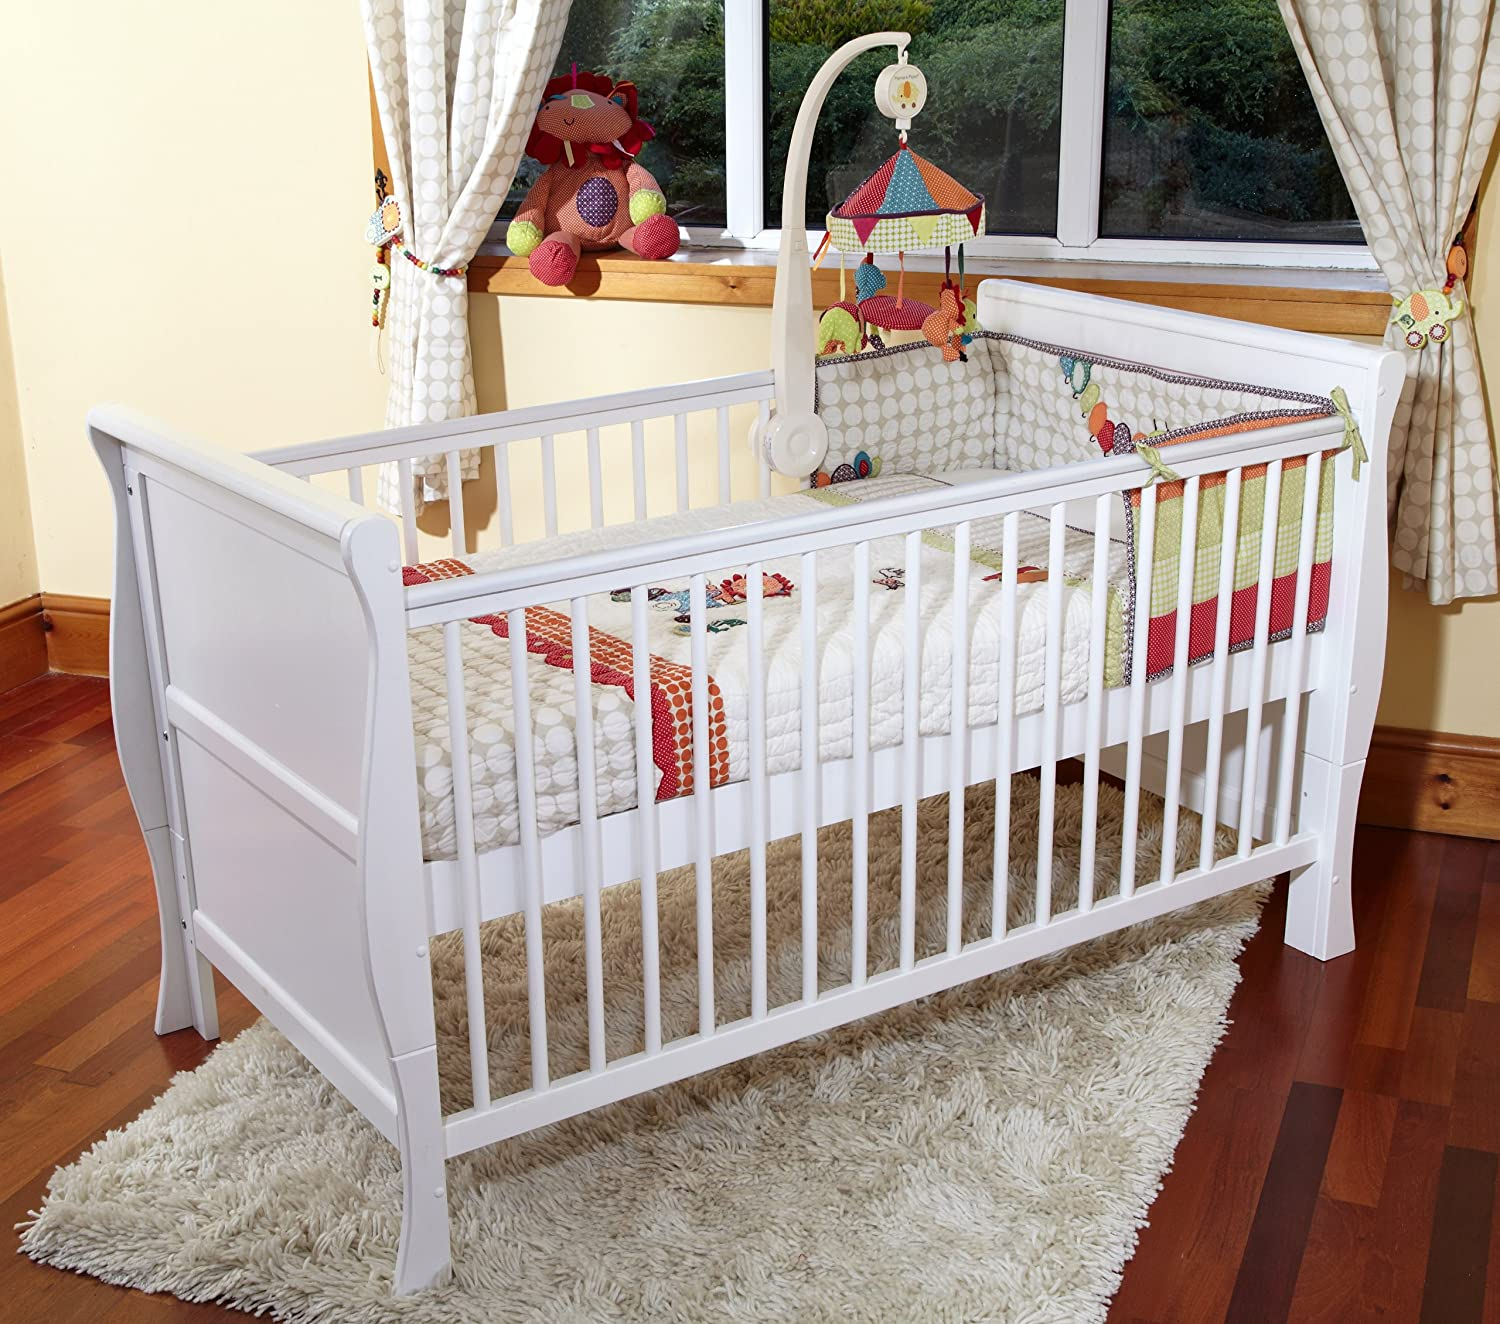 POPPY'S PLAYGROUND SCARLETT WHITE COT BED & COTBED FOAM SAFETY MATTRESS Poppy' s Playground